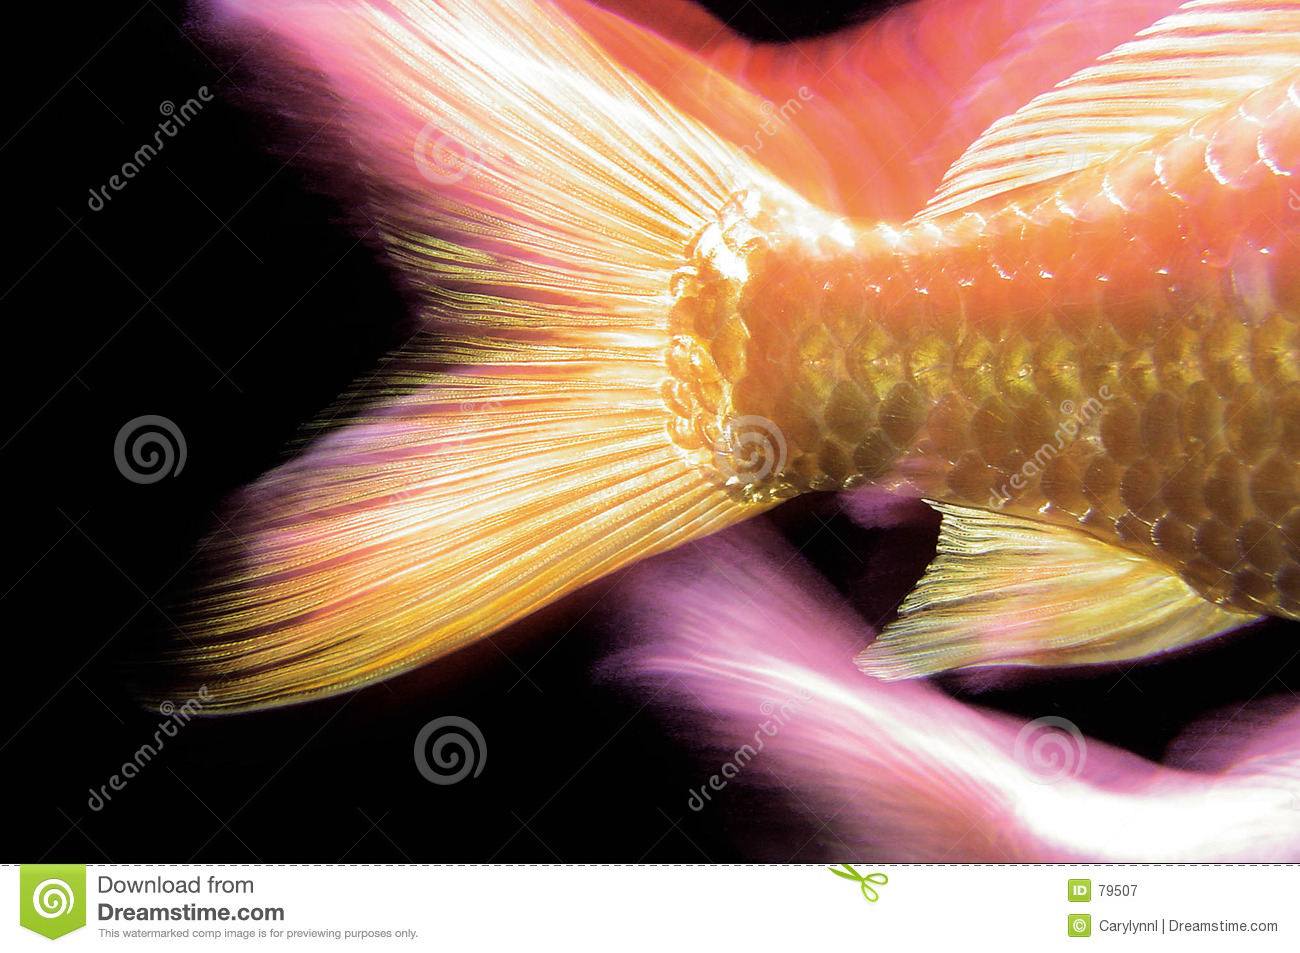 Fish tail fish beautiful - photo#17